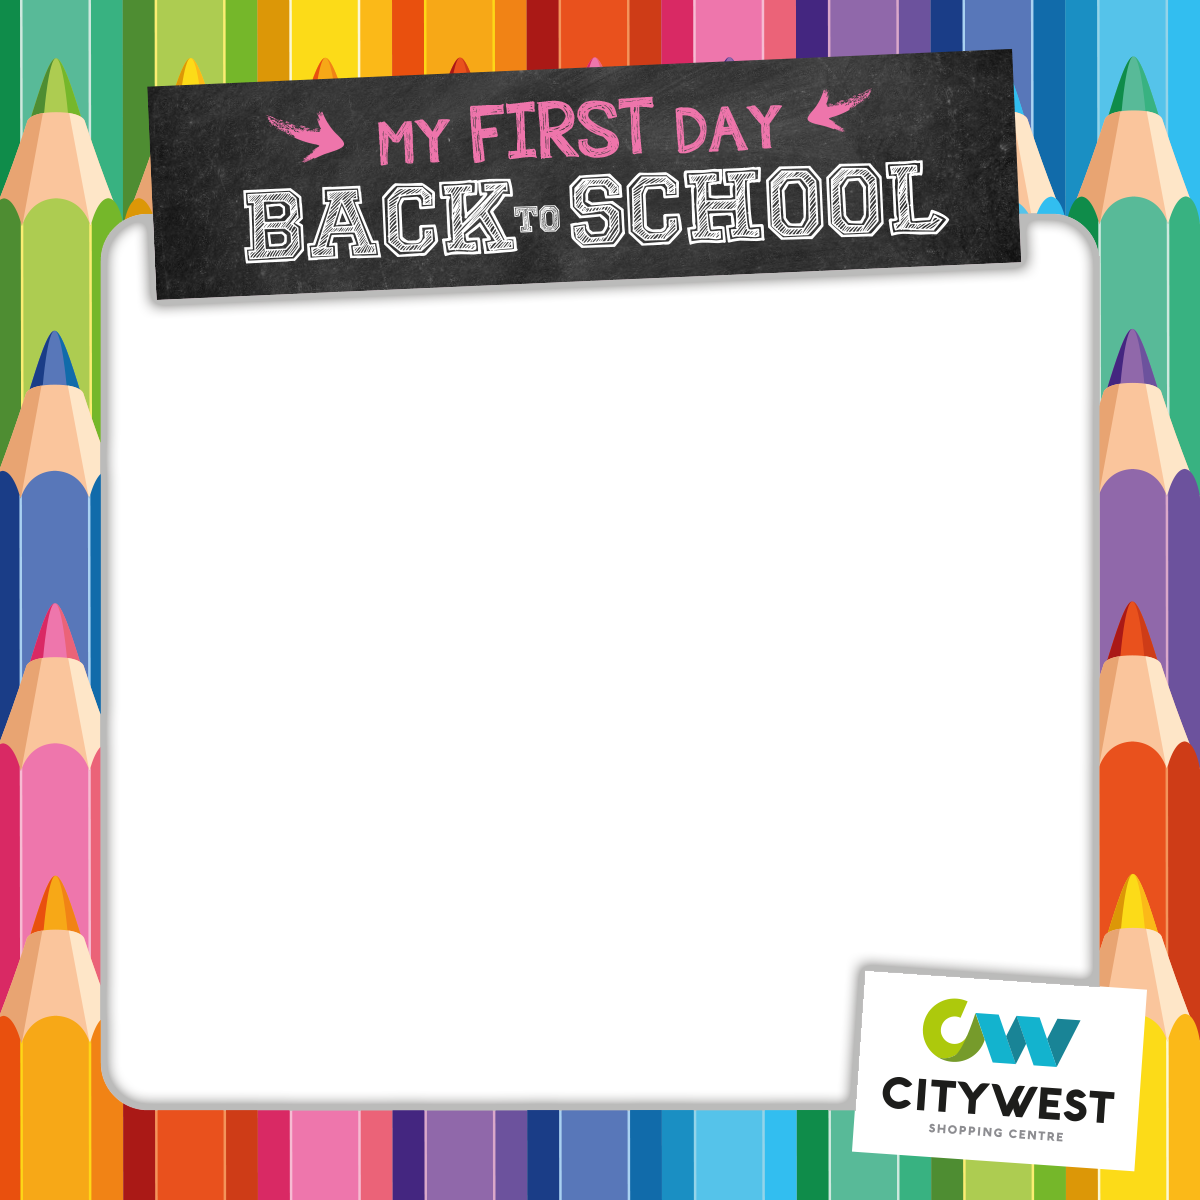 Back to School at Citywest Shopping Centre!